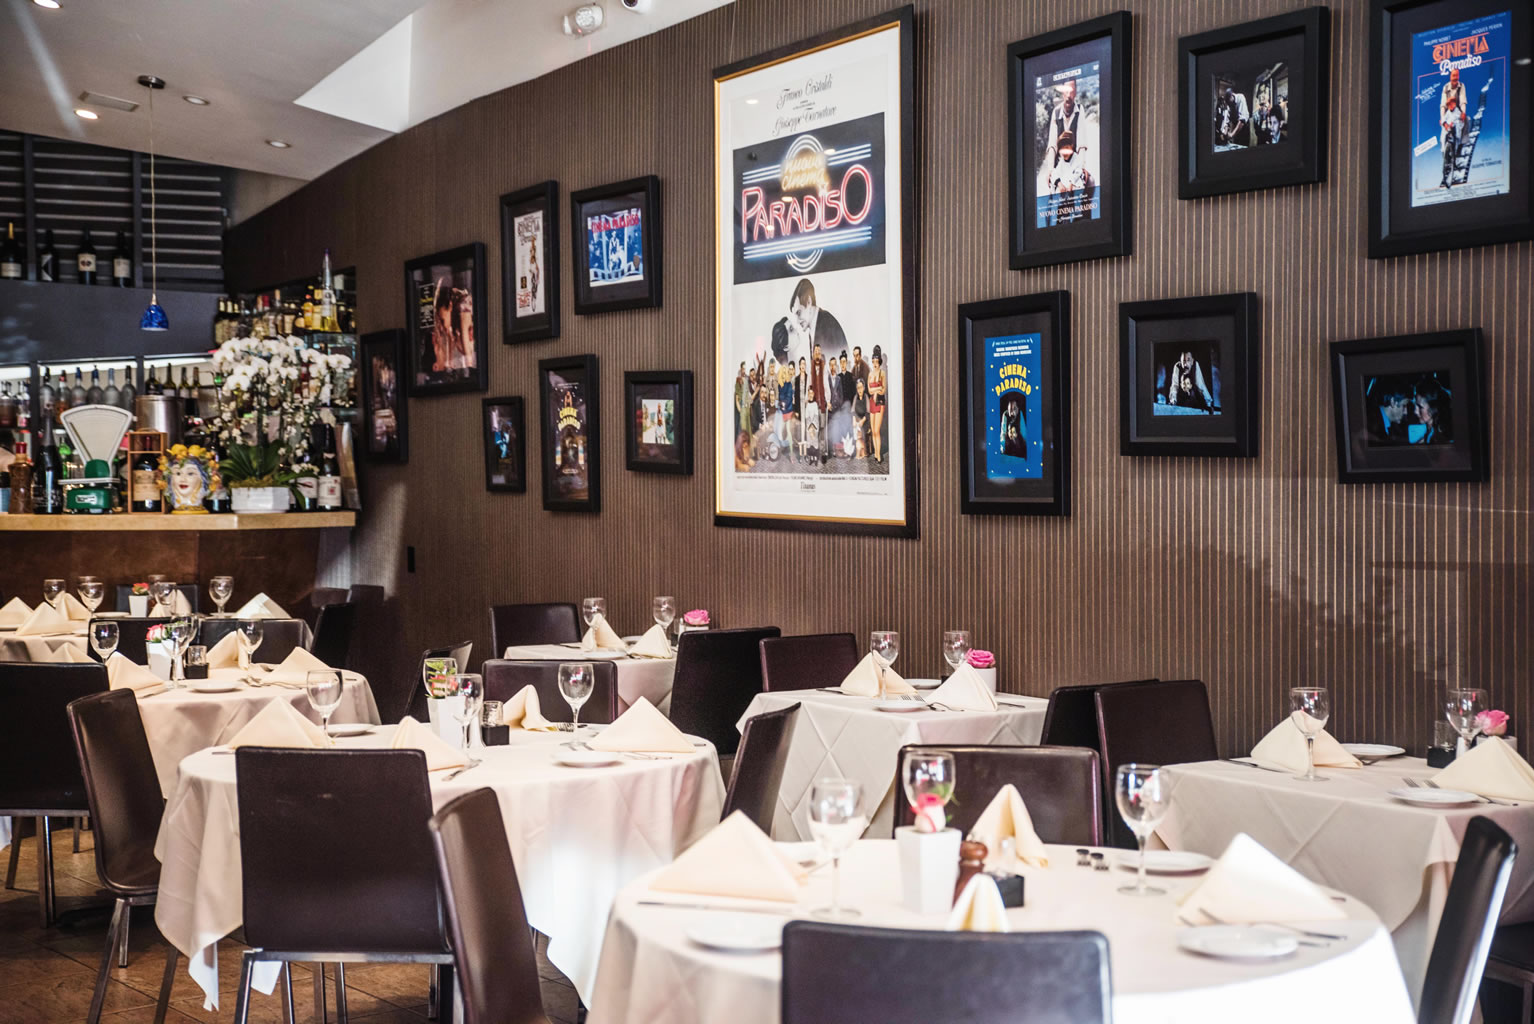 Piccolo Paradiso - Restaurant Dining Setting in Gallery-454913759